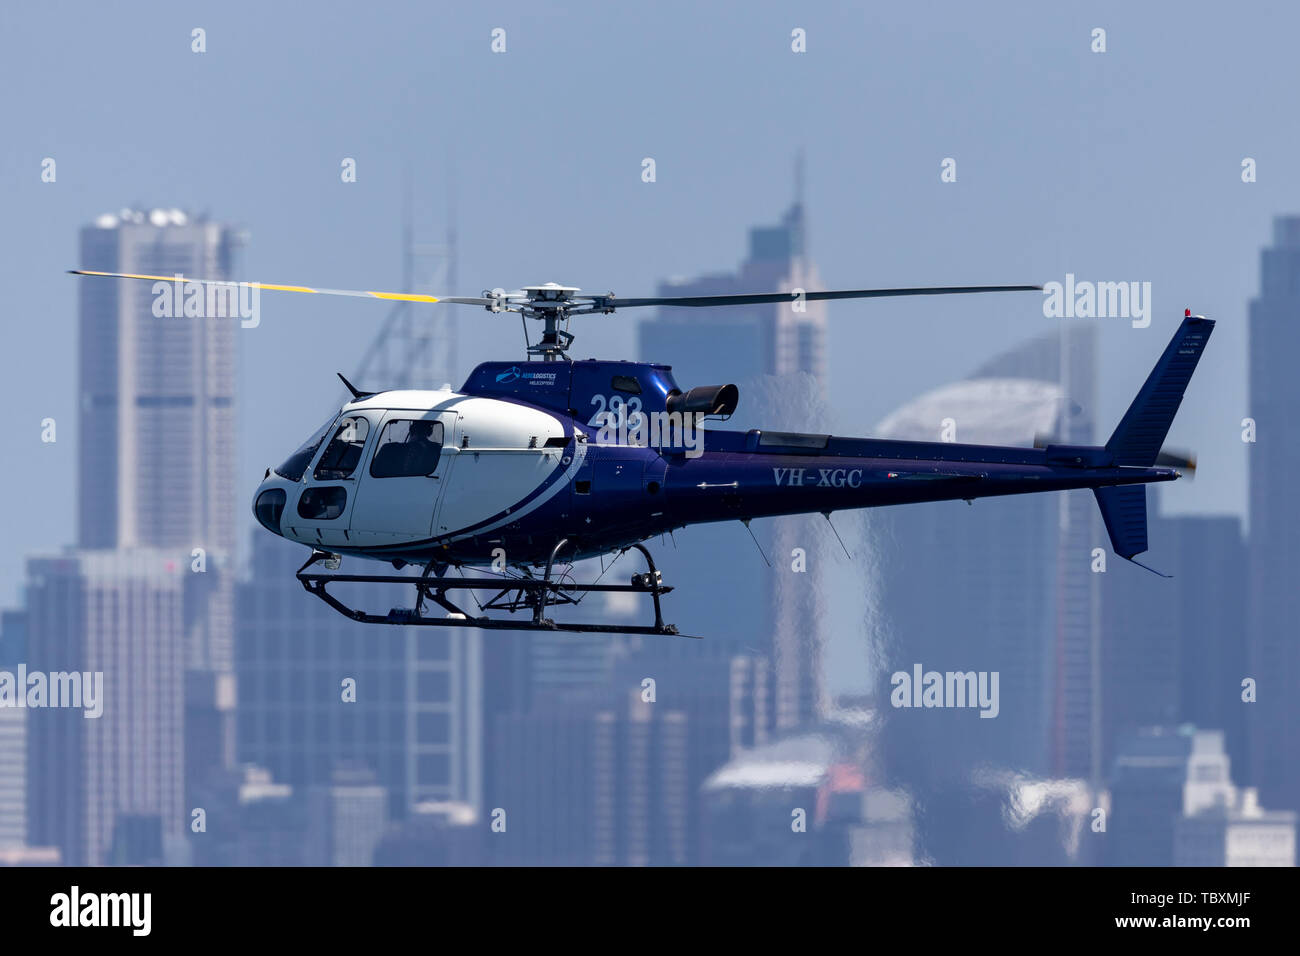 Eurocopter AS 350B3 Helicopter VH-XGC conducting aerial